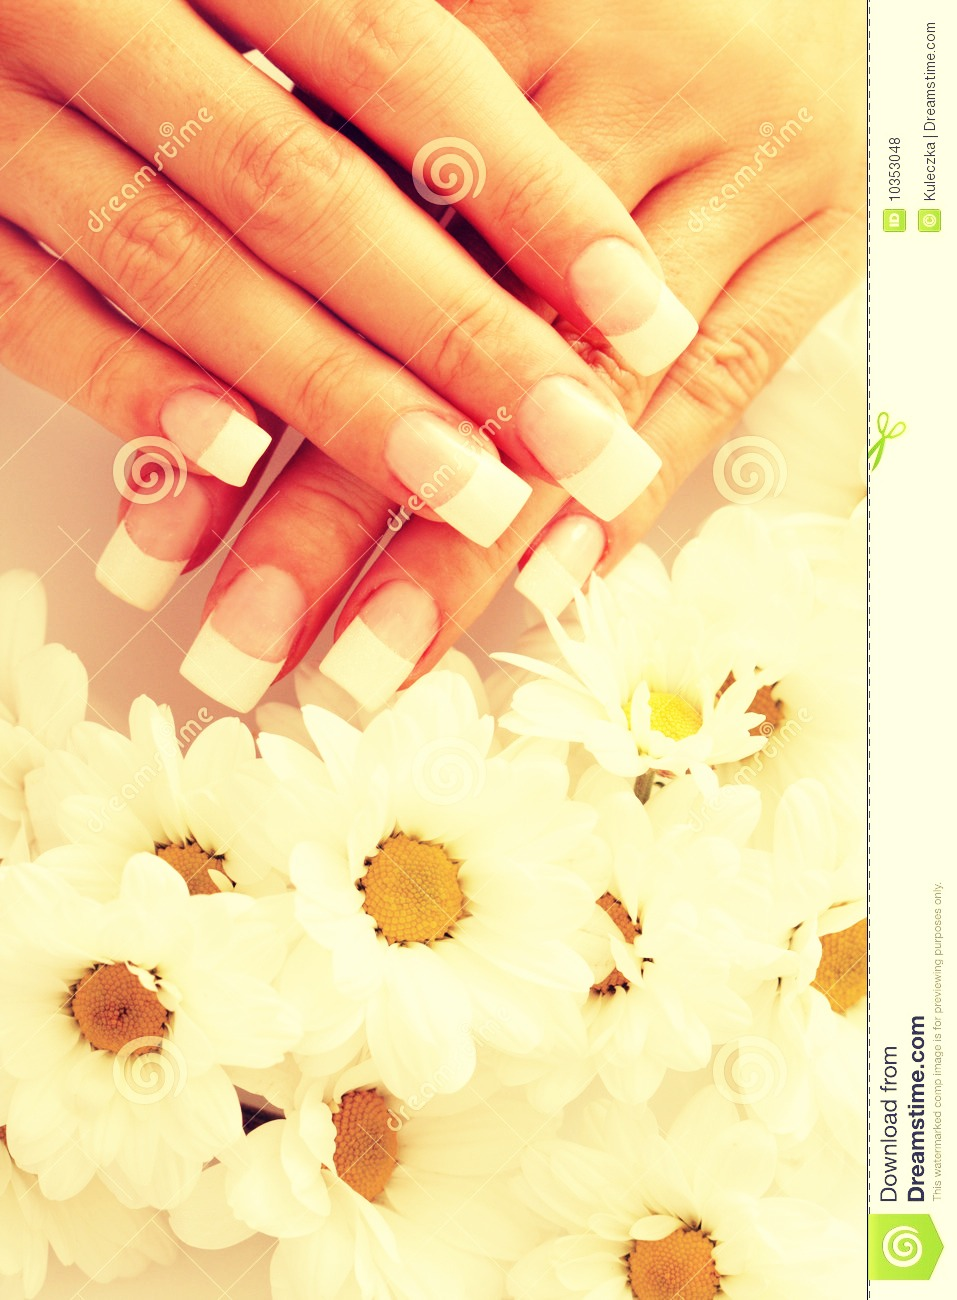 how to grow nails really fast